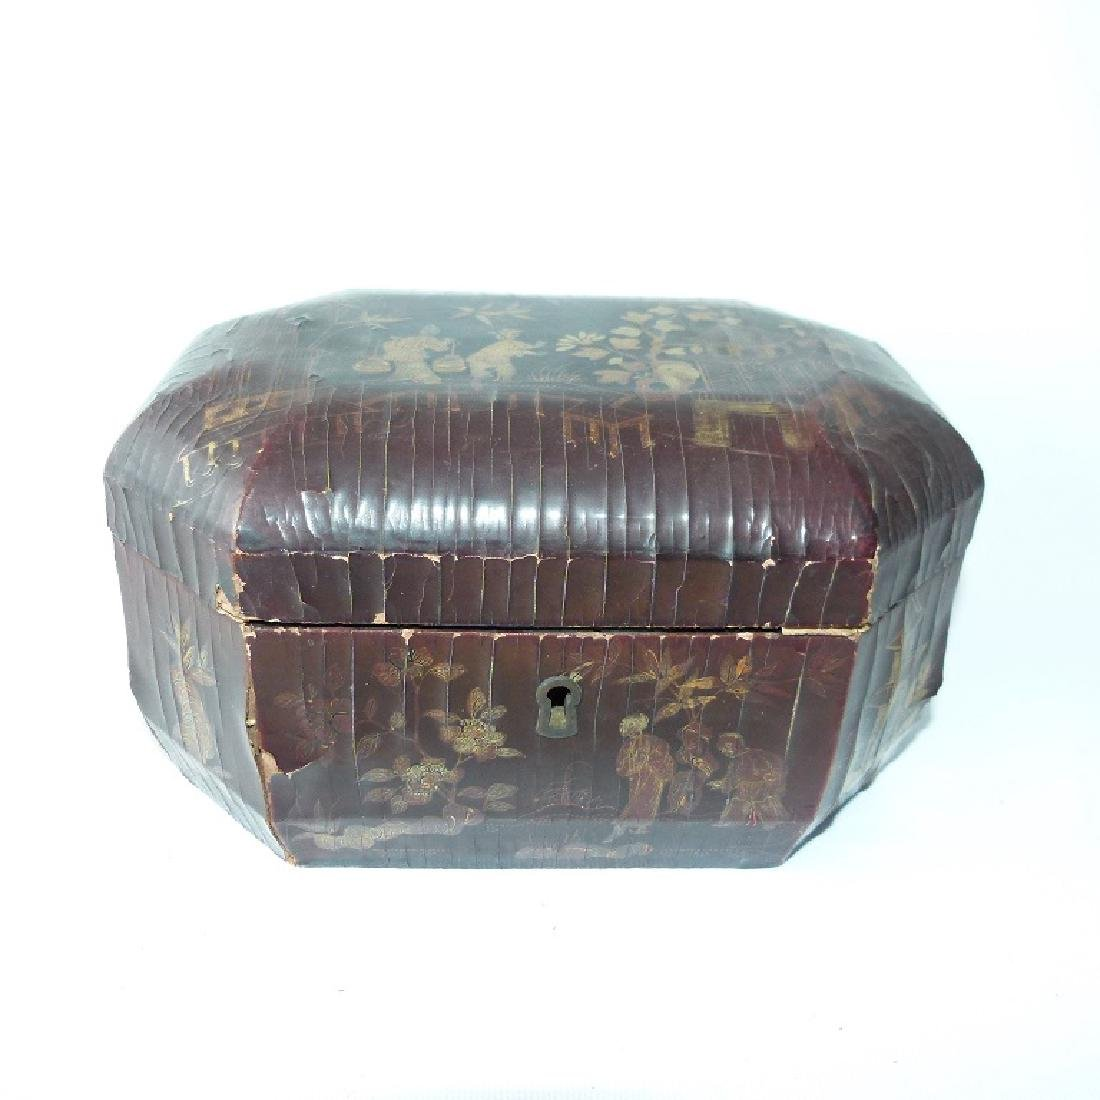 JAPANESE CHINOISERIE LACQUERED/PEWTER TEA CADDY 19TH C.